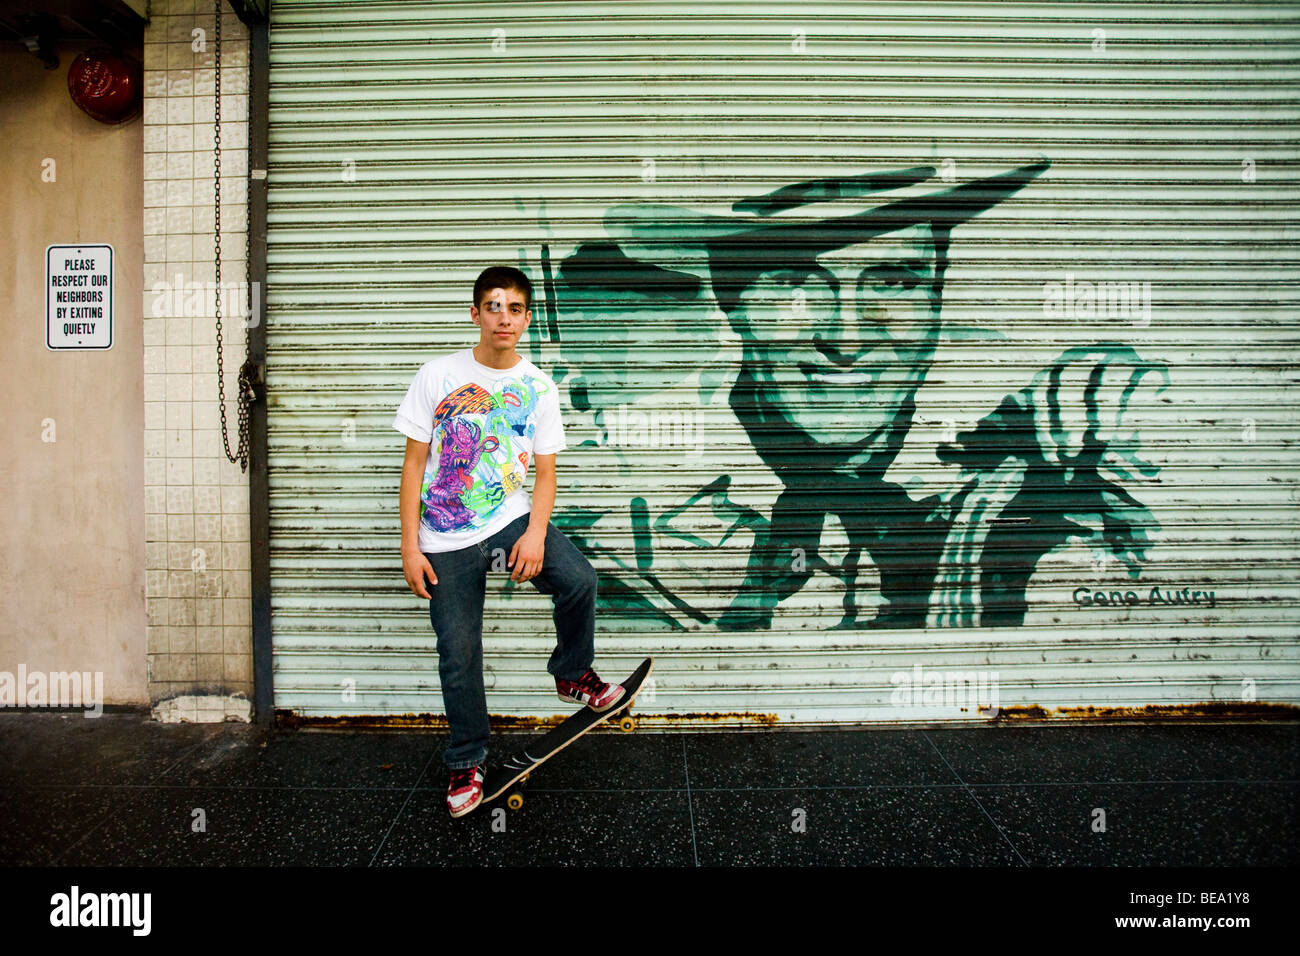 A skateboarder poses near a mural of Gene Autry, Hollywood Boulevard, Los Angeles, California, United States of - Stock Image